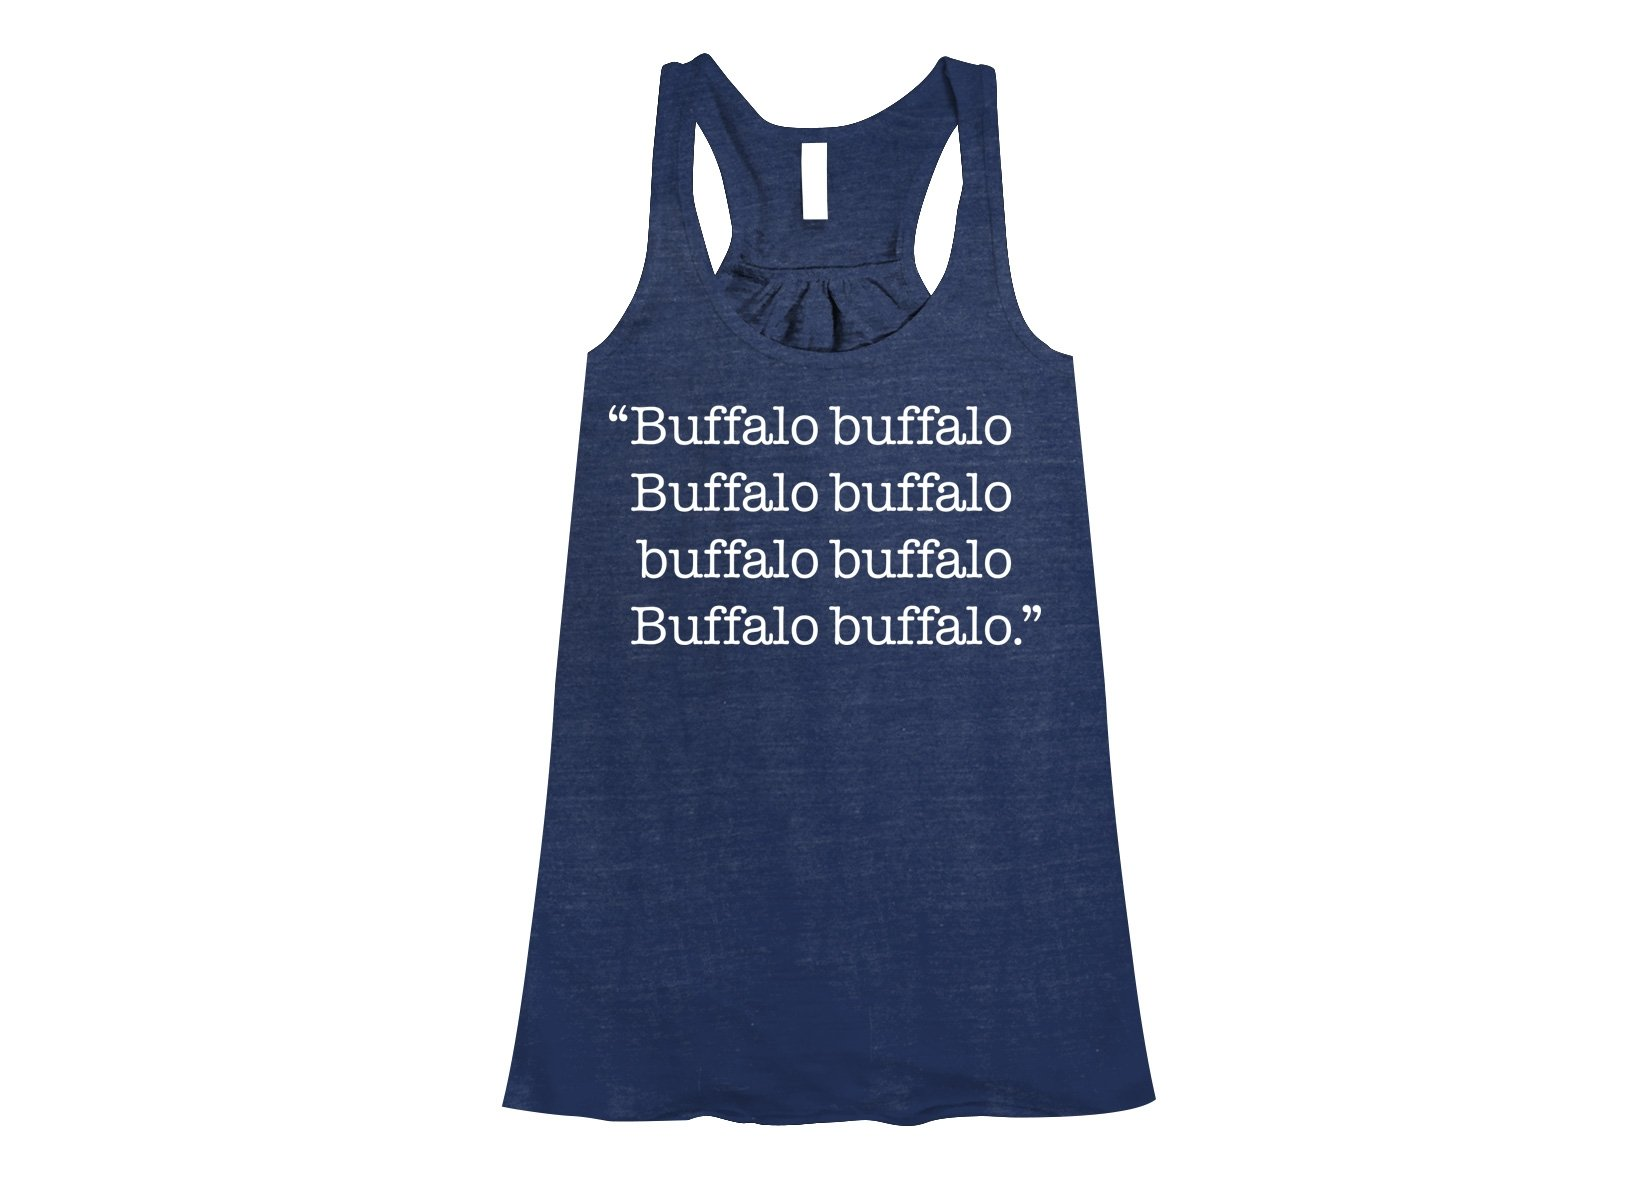 Buffalo buffalo on Womens Tanks T-Shirt